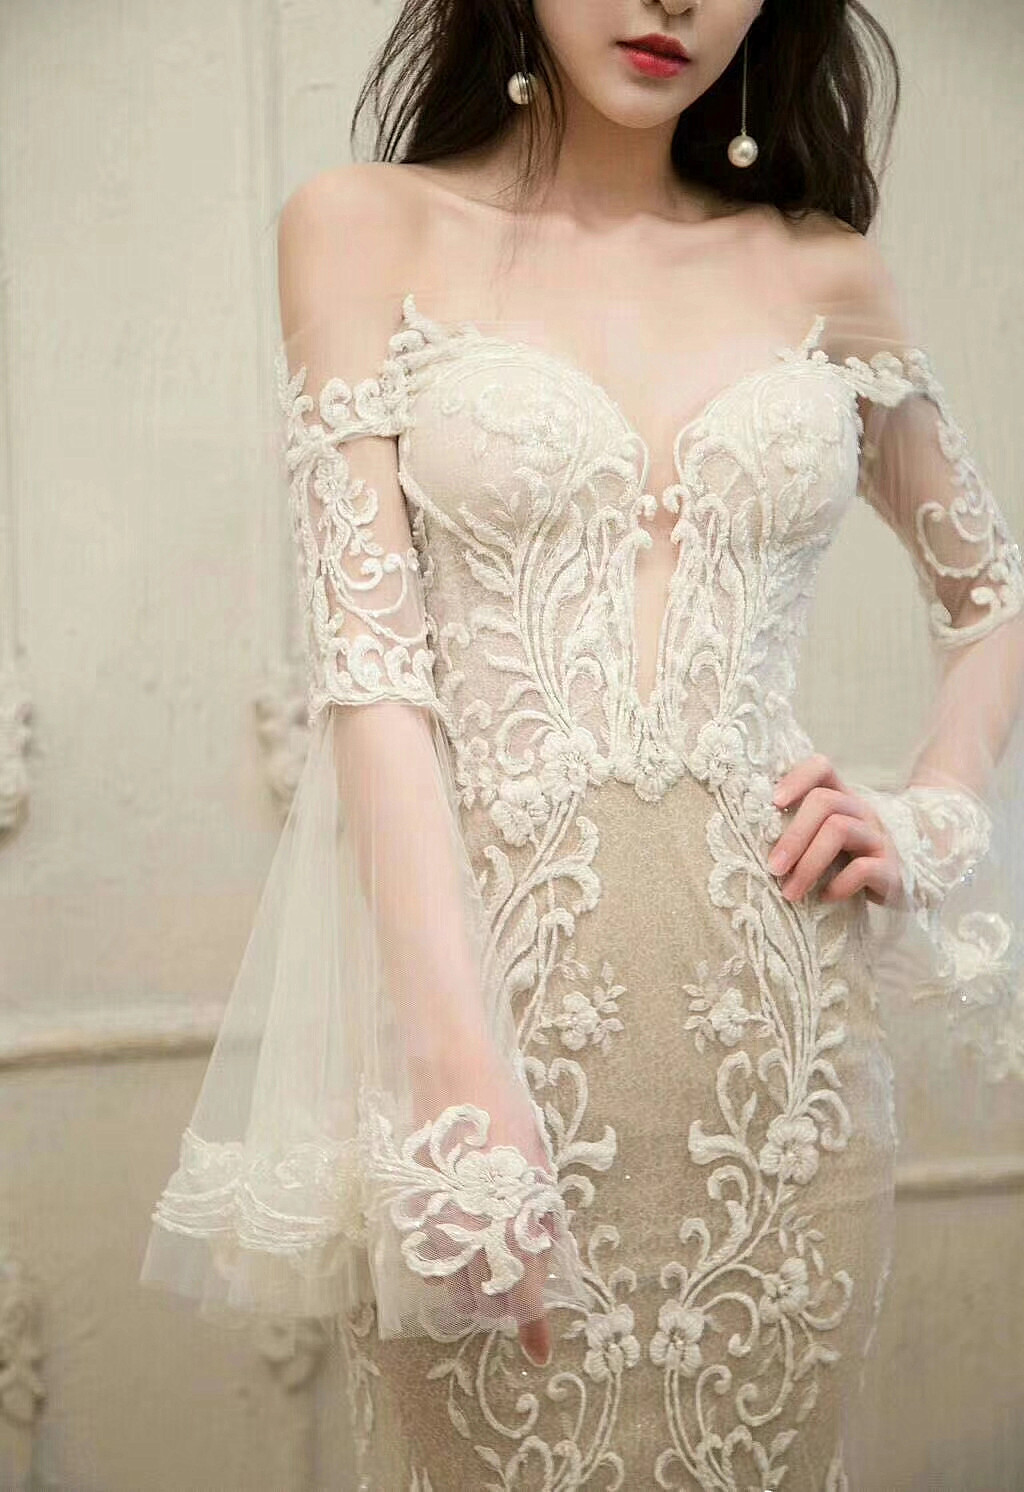 Image 2 - Free Shipping Imports White Sequins Embroidered Mesh Lace Fabric,  Lace Wedding Dress Fashion Wedding Decoration Fabric RS1110Fabric   -